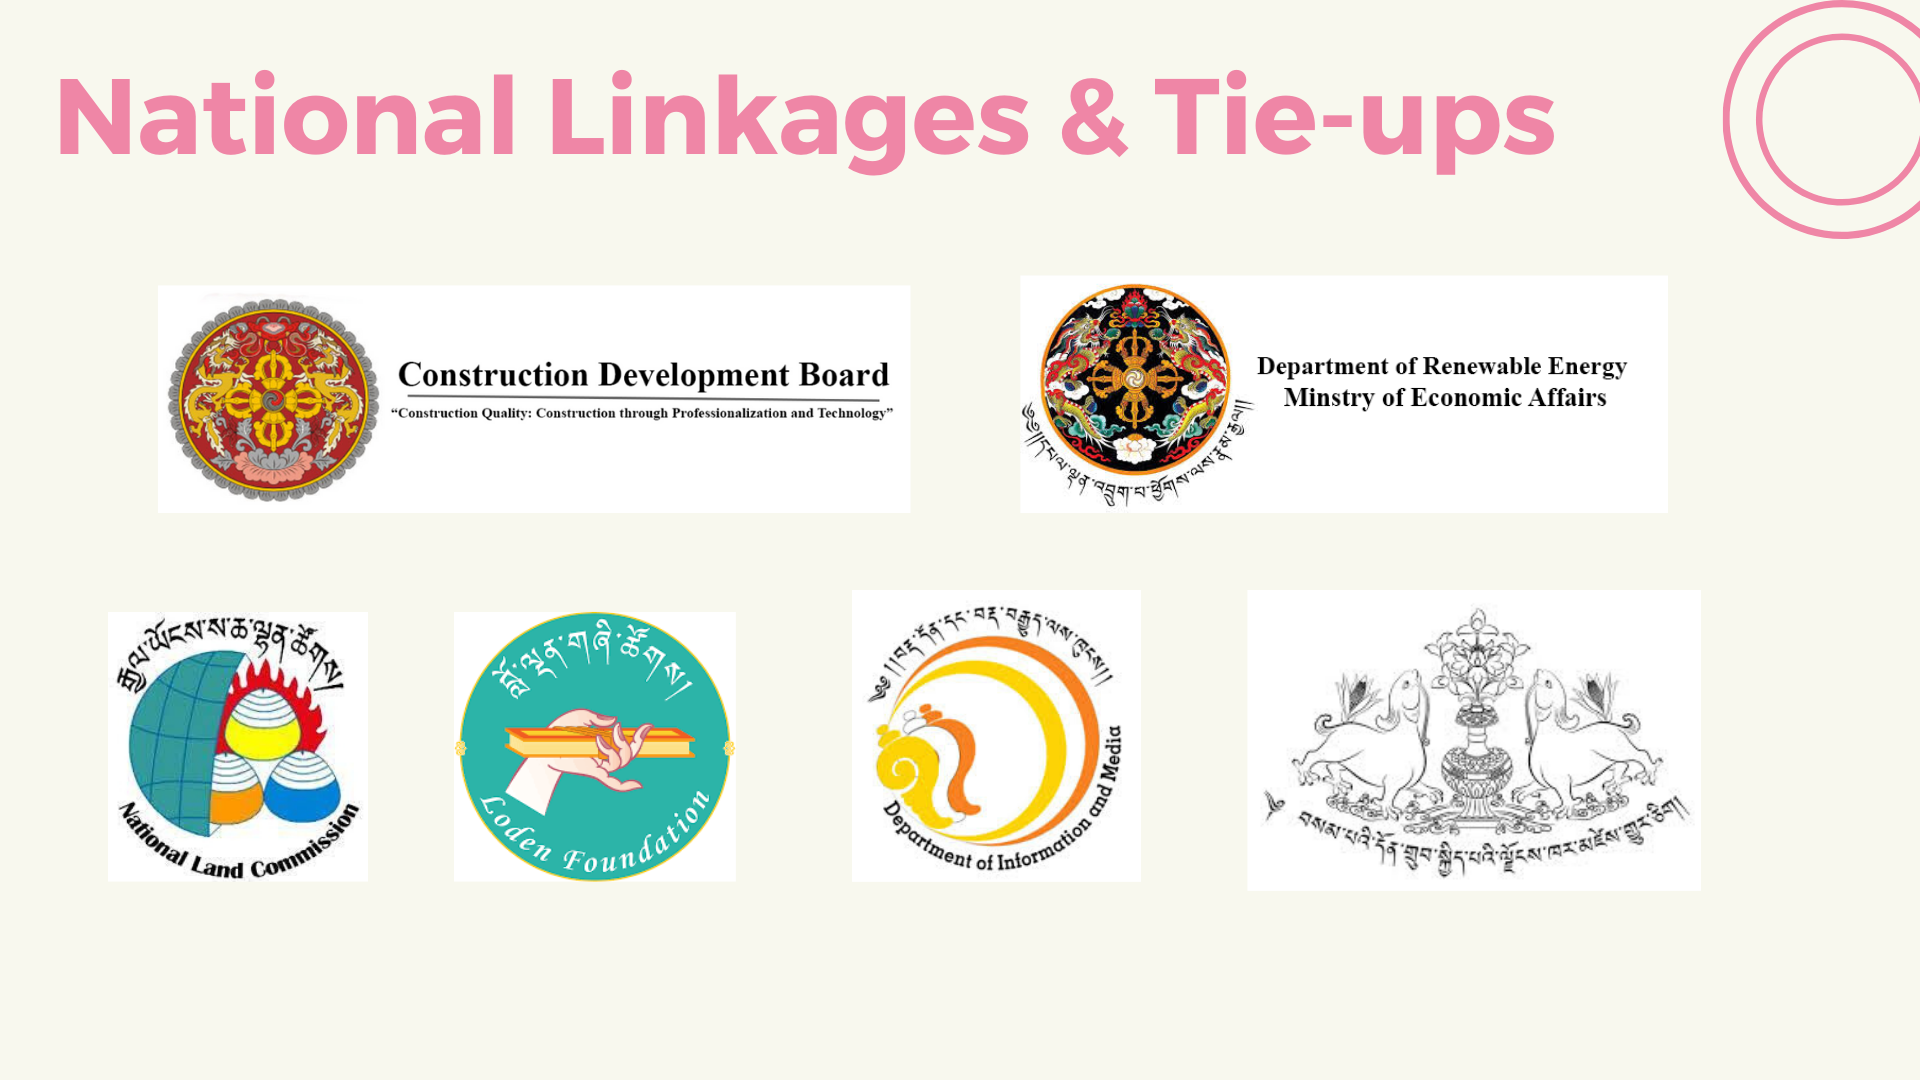 7- National Linkages Tie-Ups